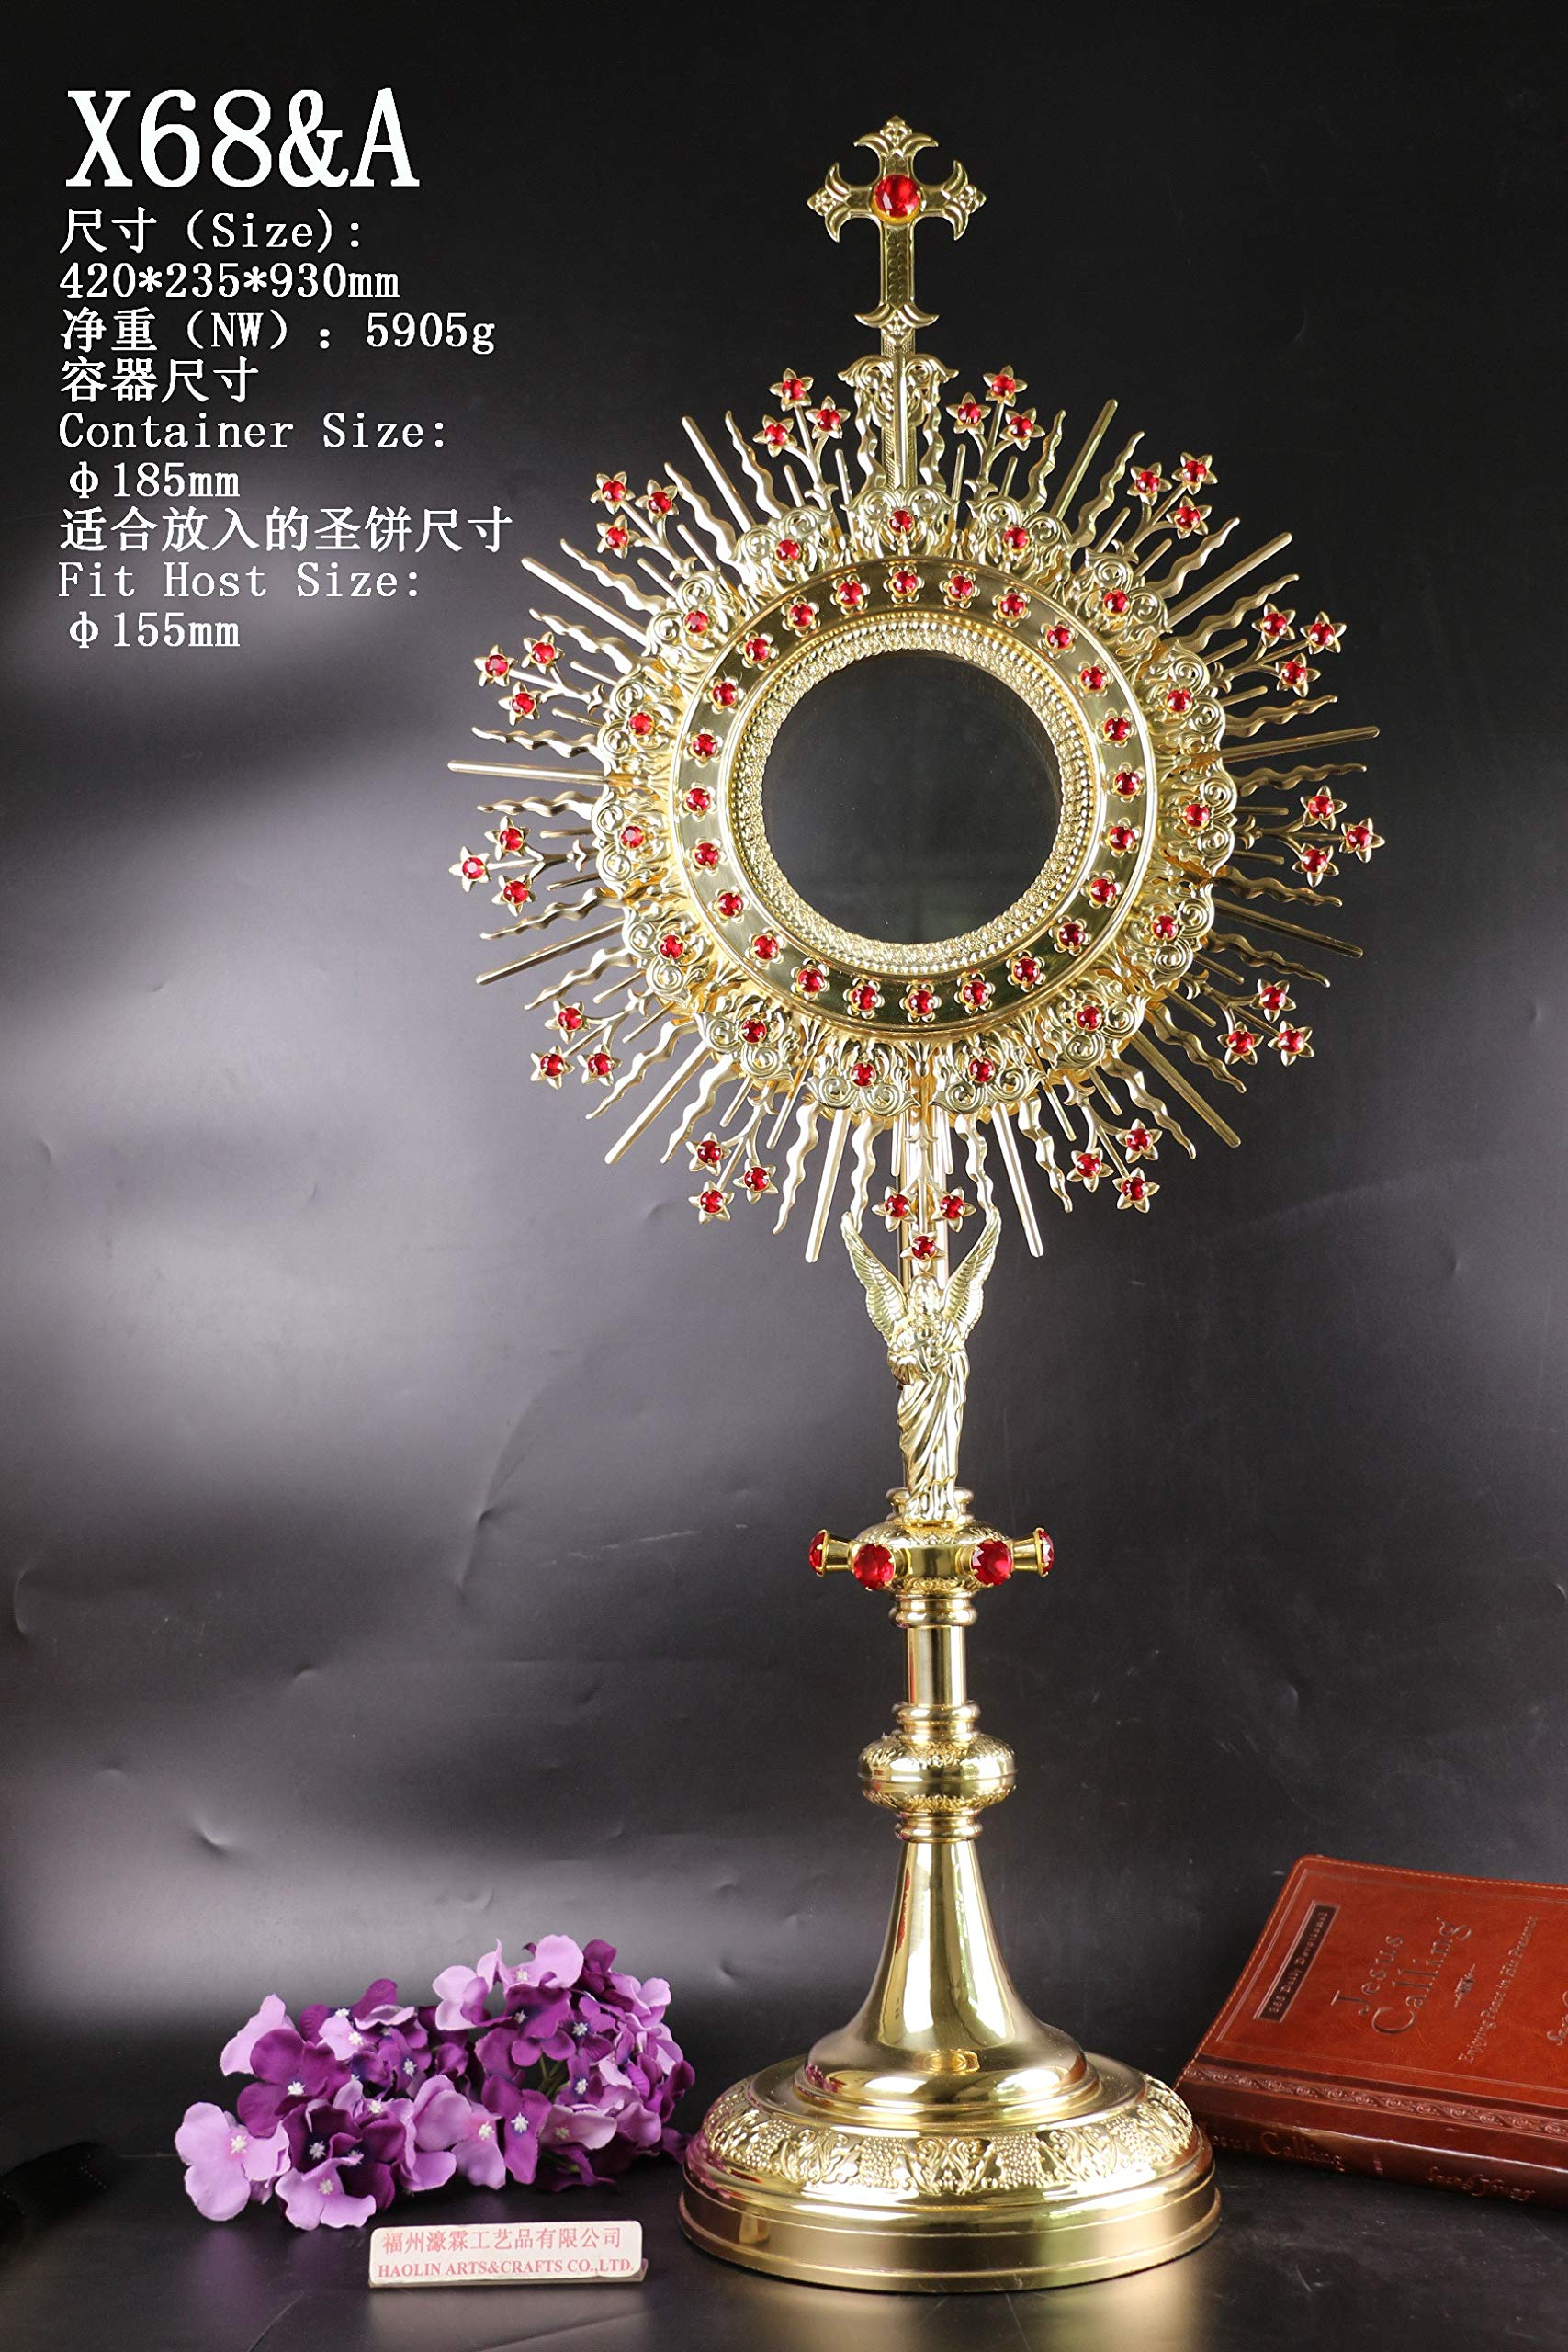 Large Brass Monstrance Reliquary with Lunette for Church, 36 3/5''High X68&A